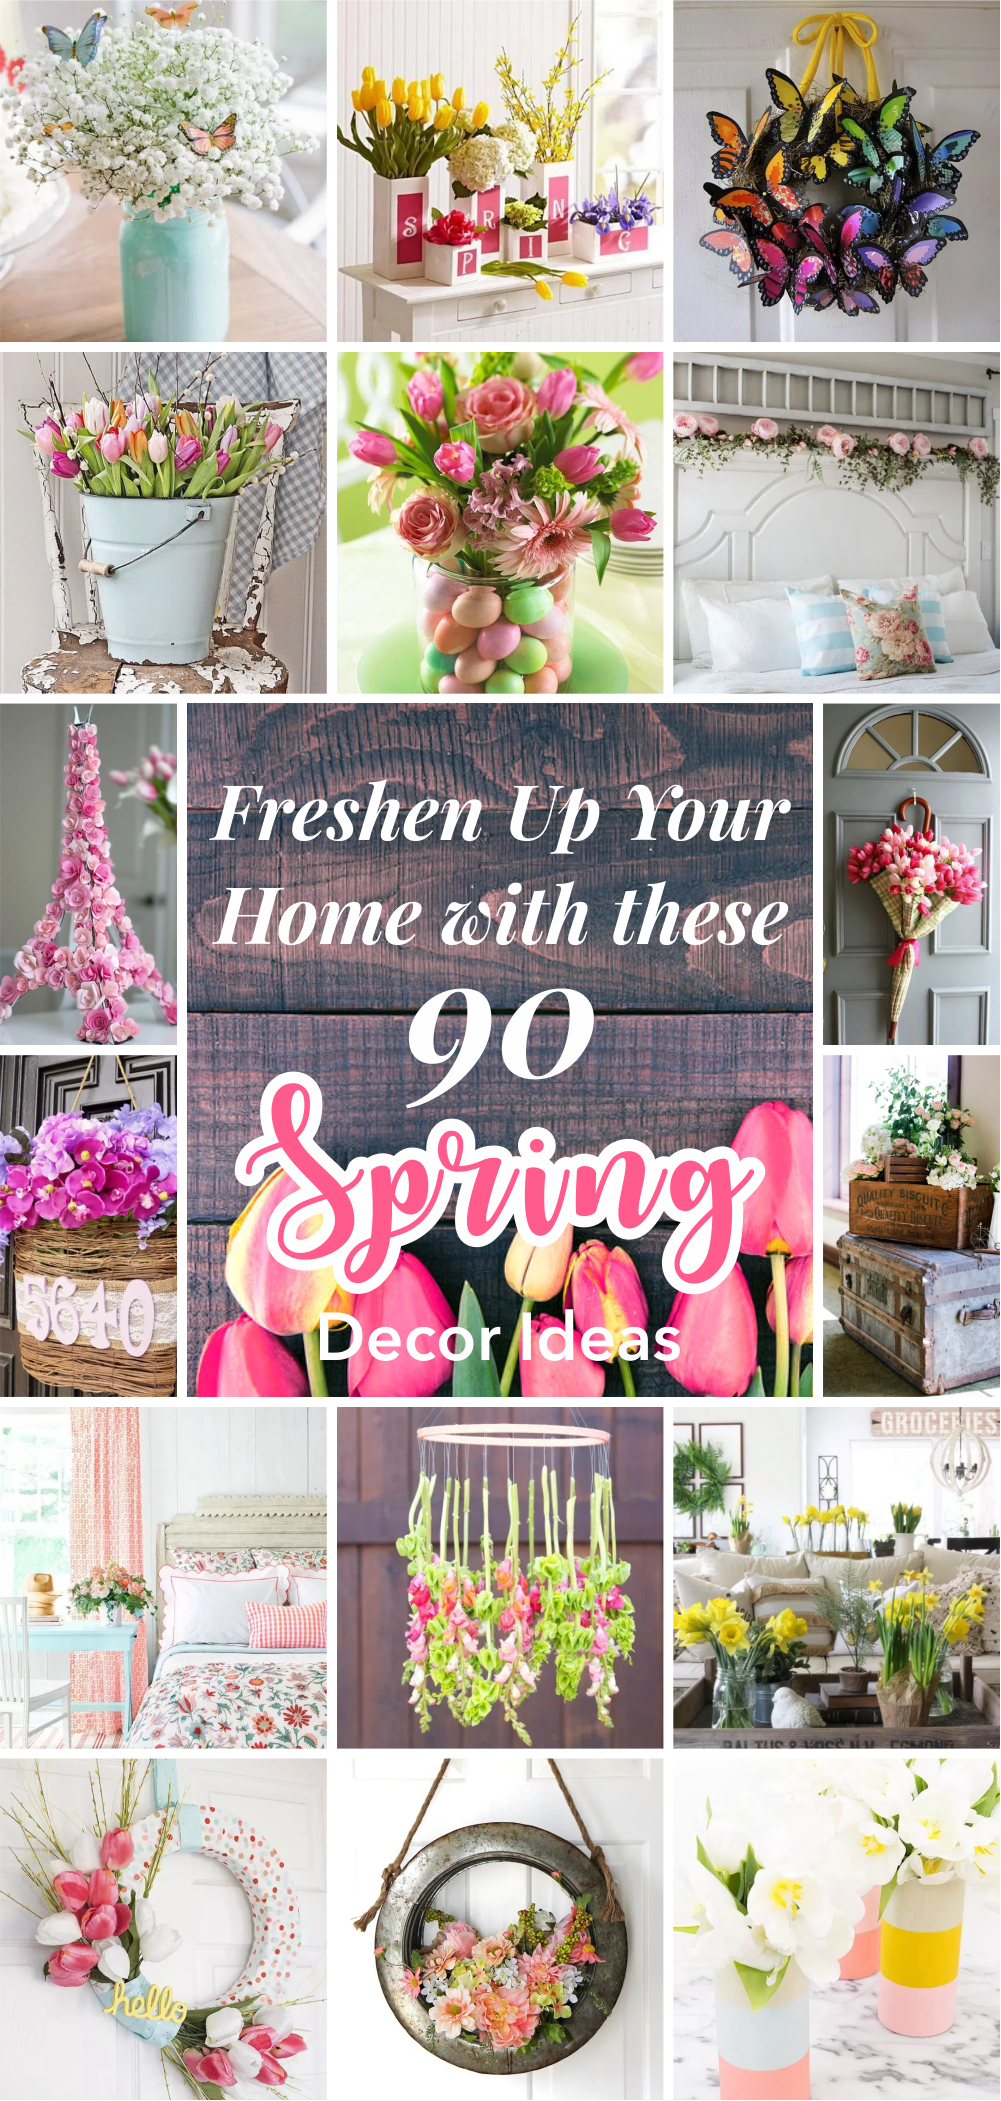 Freshen up your home with these 90 spring decor ideas 1